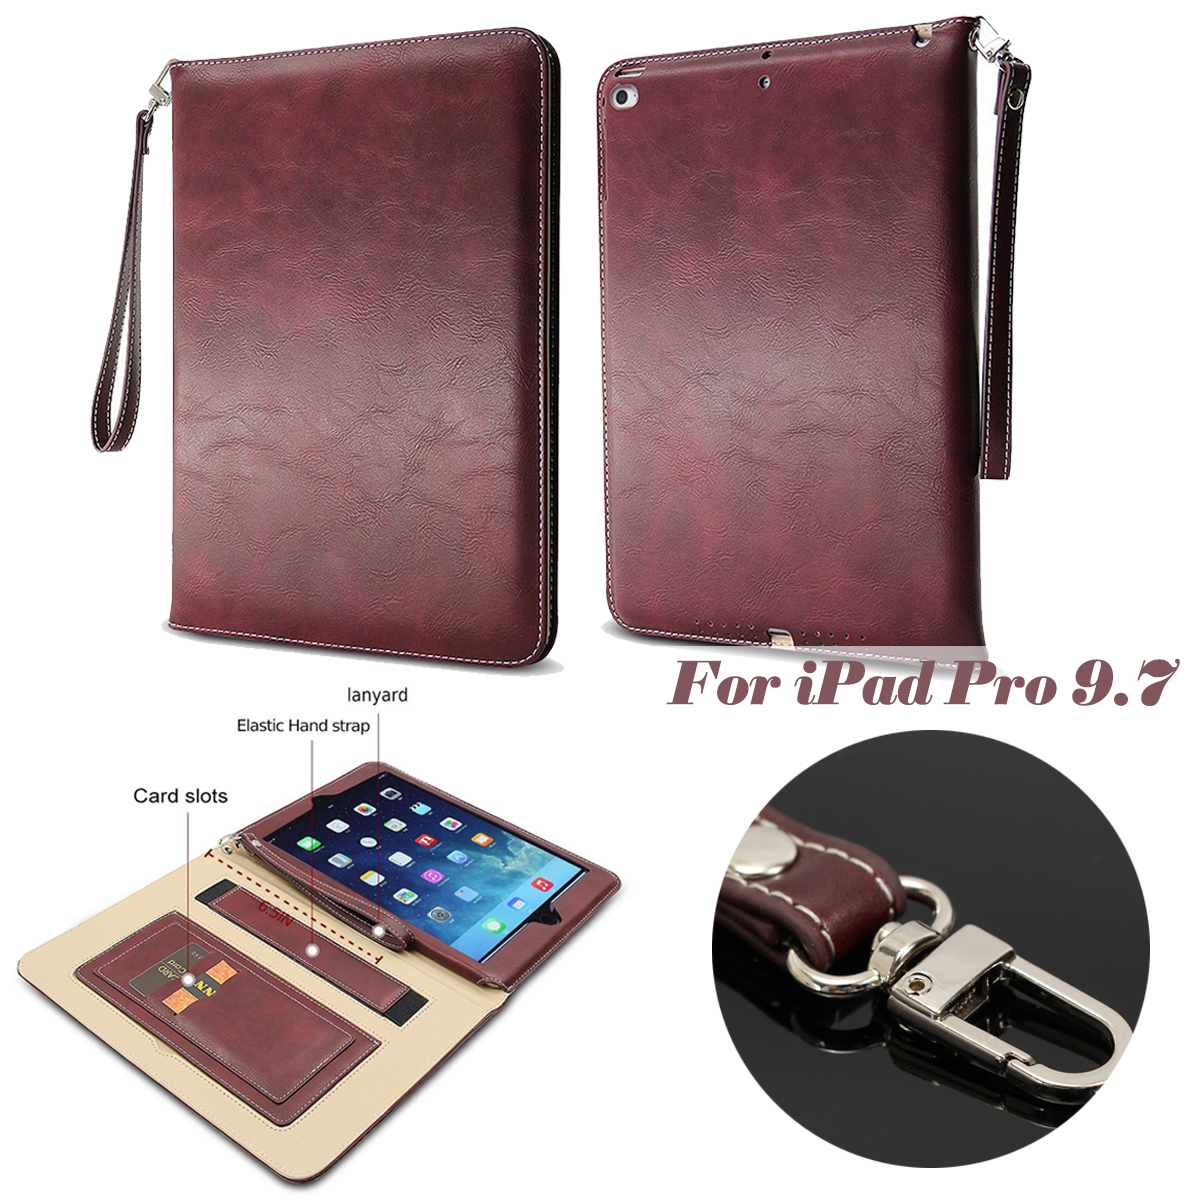 Flip Smart Sleep Shockproof Kickstand PU Leather Case For iPad Pro 9.7 Inch